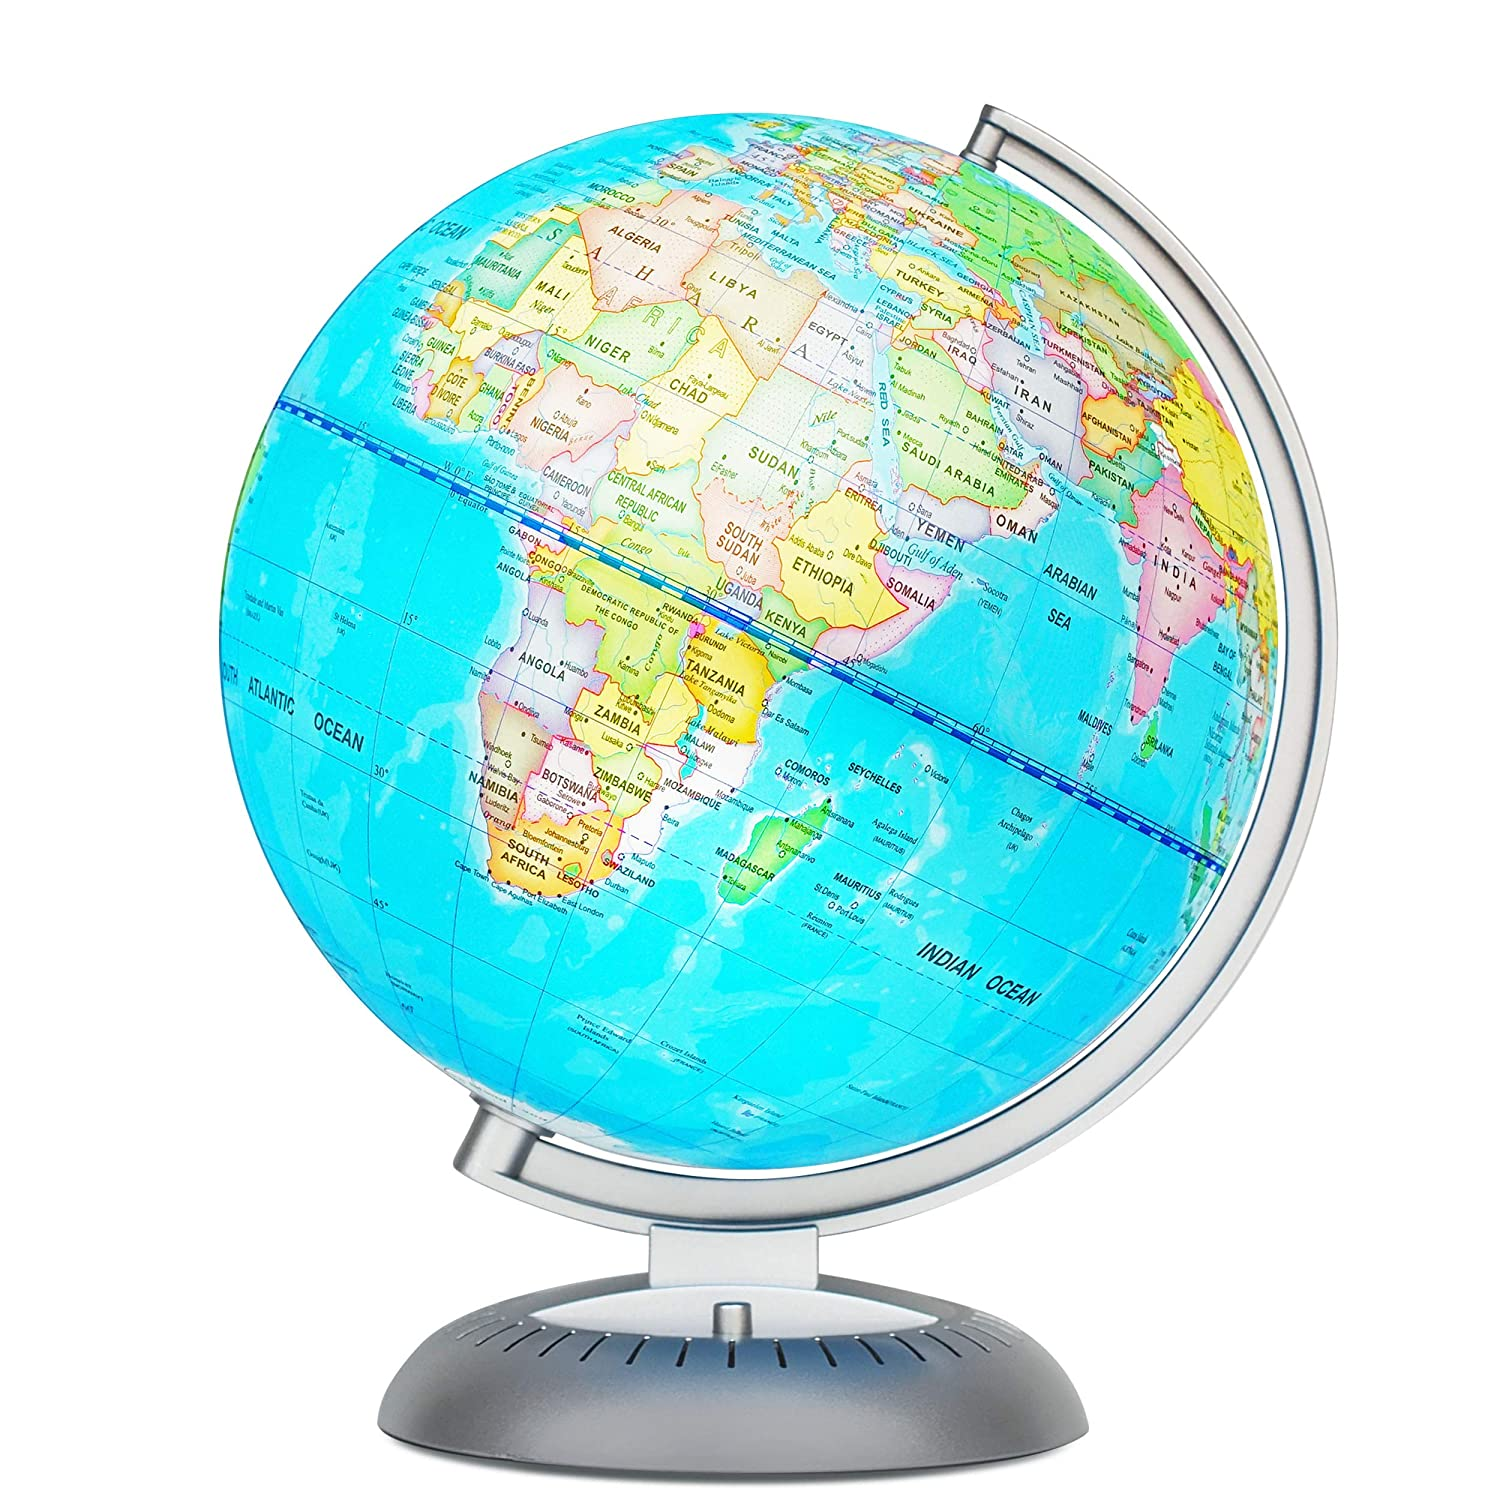 Map Of The World Globe View.Illuminated World Globe For Kids With Stand Built In Led Light Illuminates For Night View Colorful Easy Read Labels Of Continents Countries